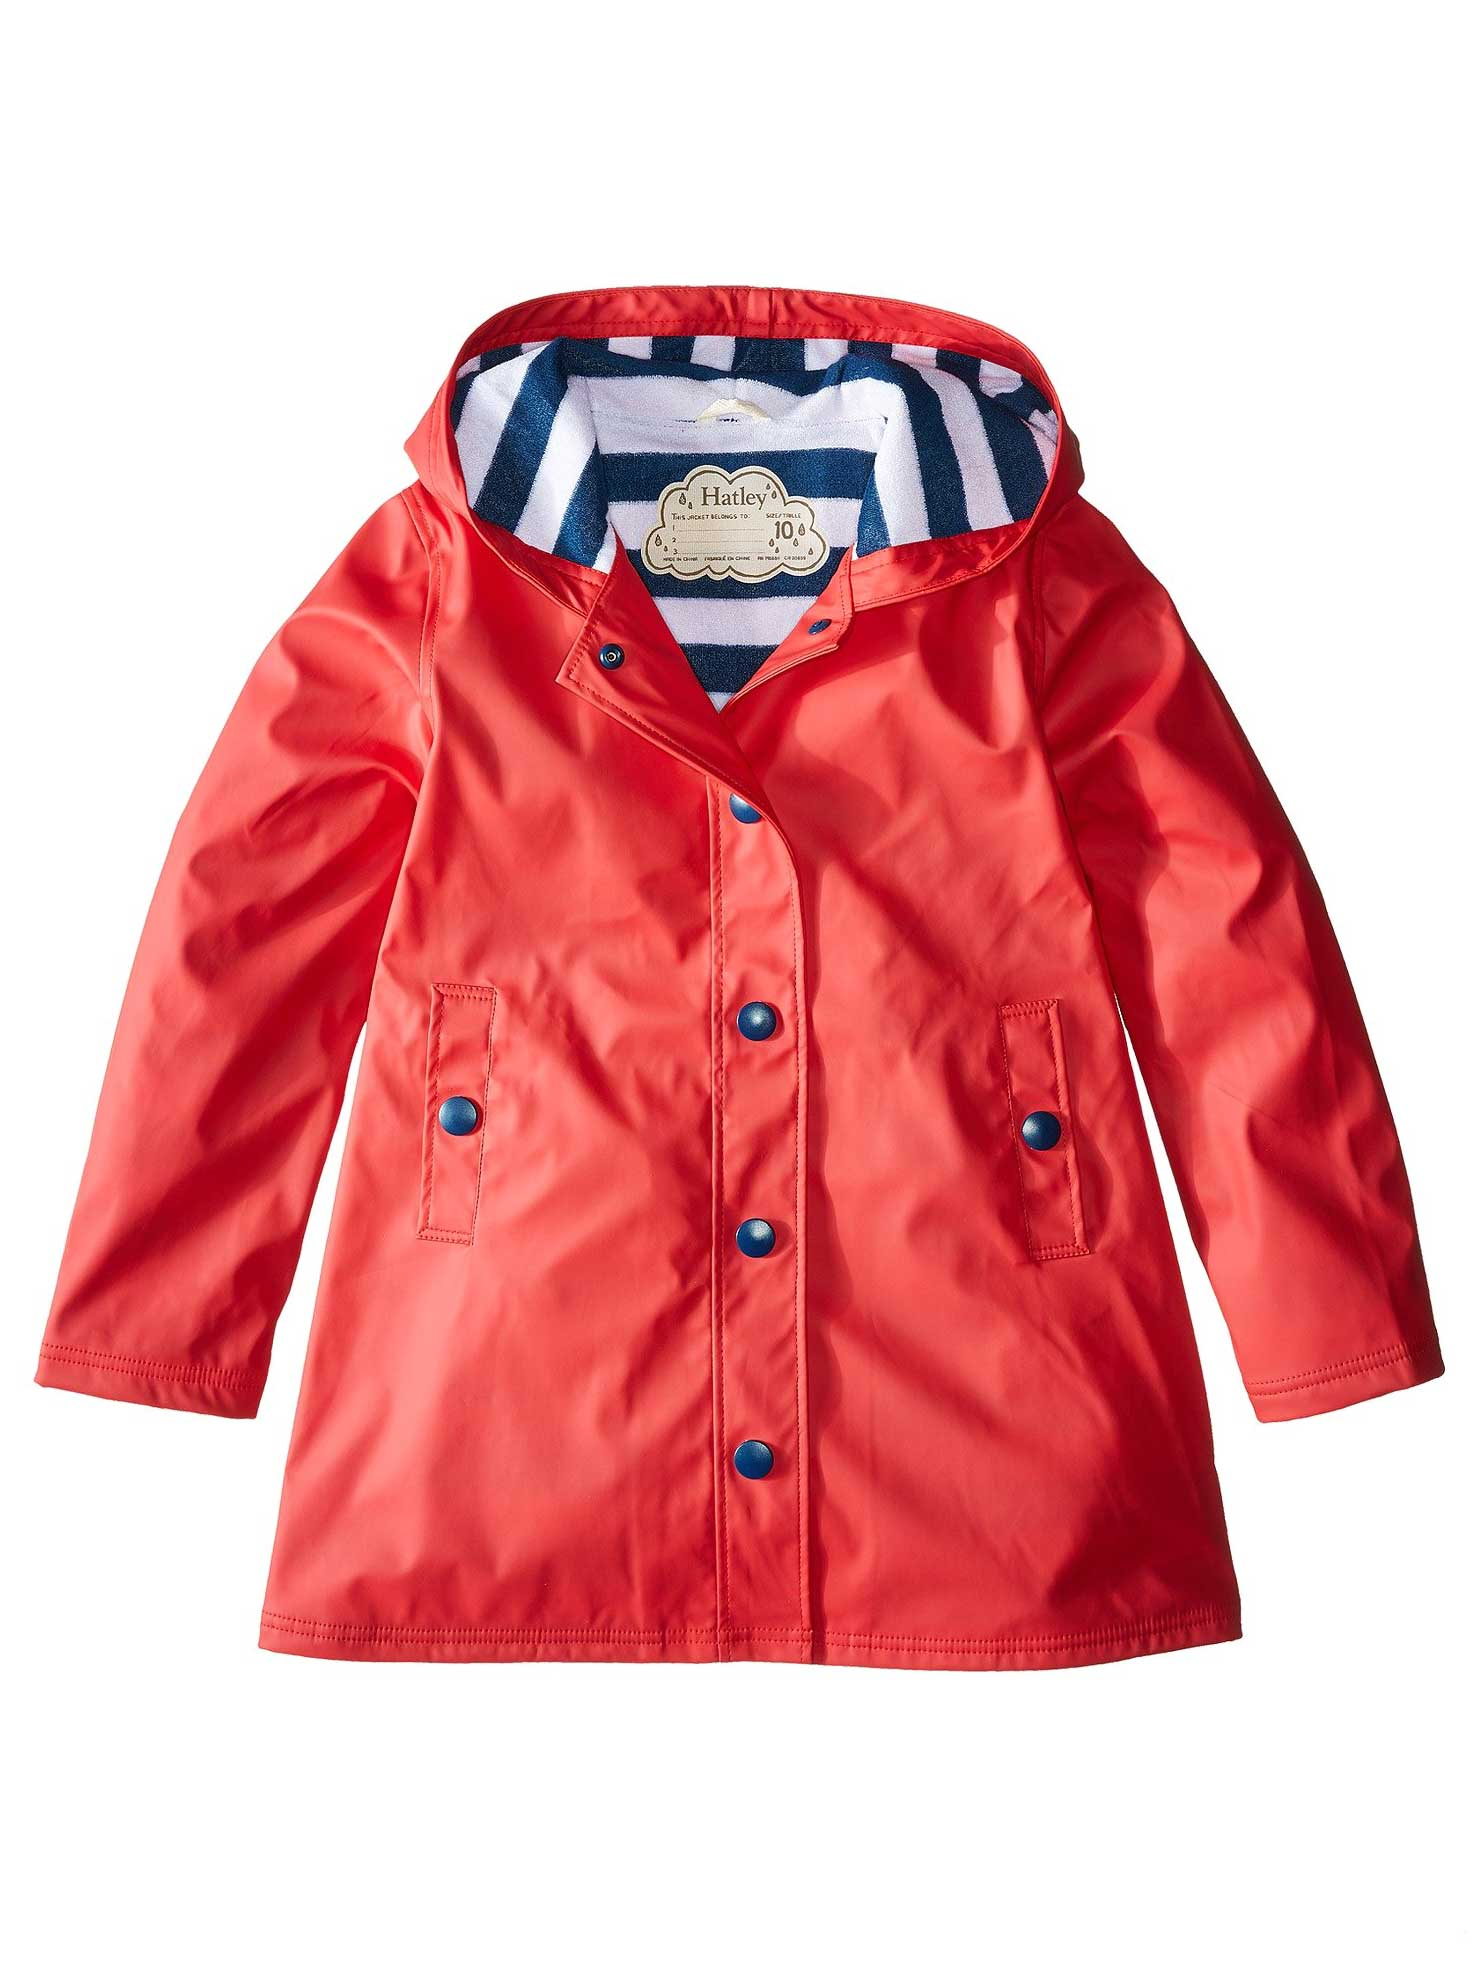 Red & Navy Splash Jacket